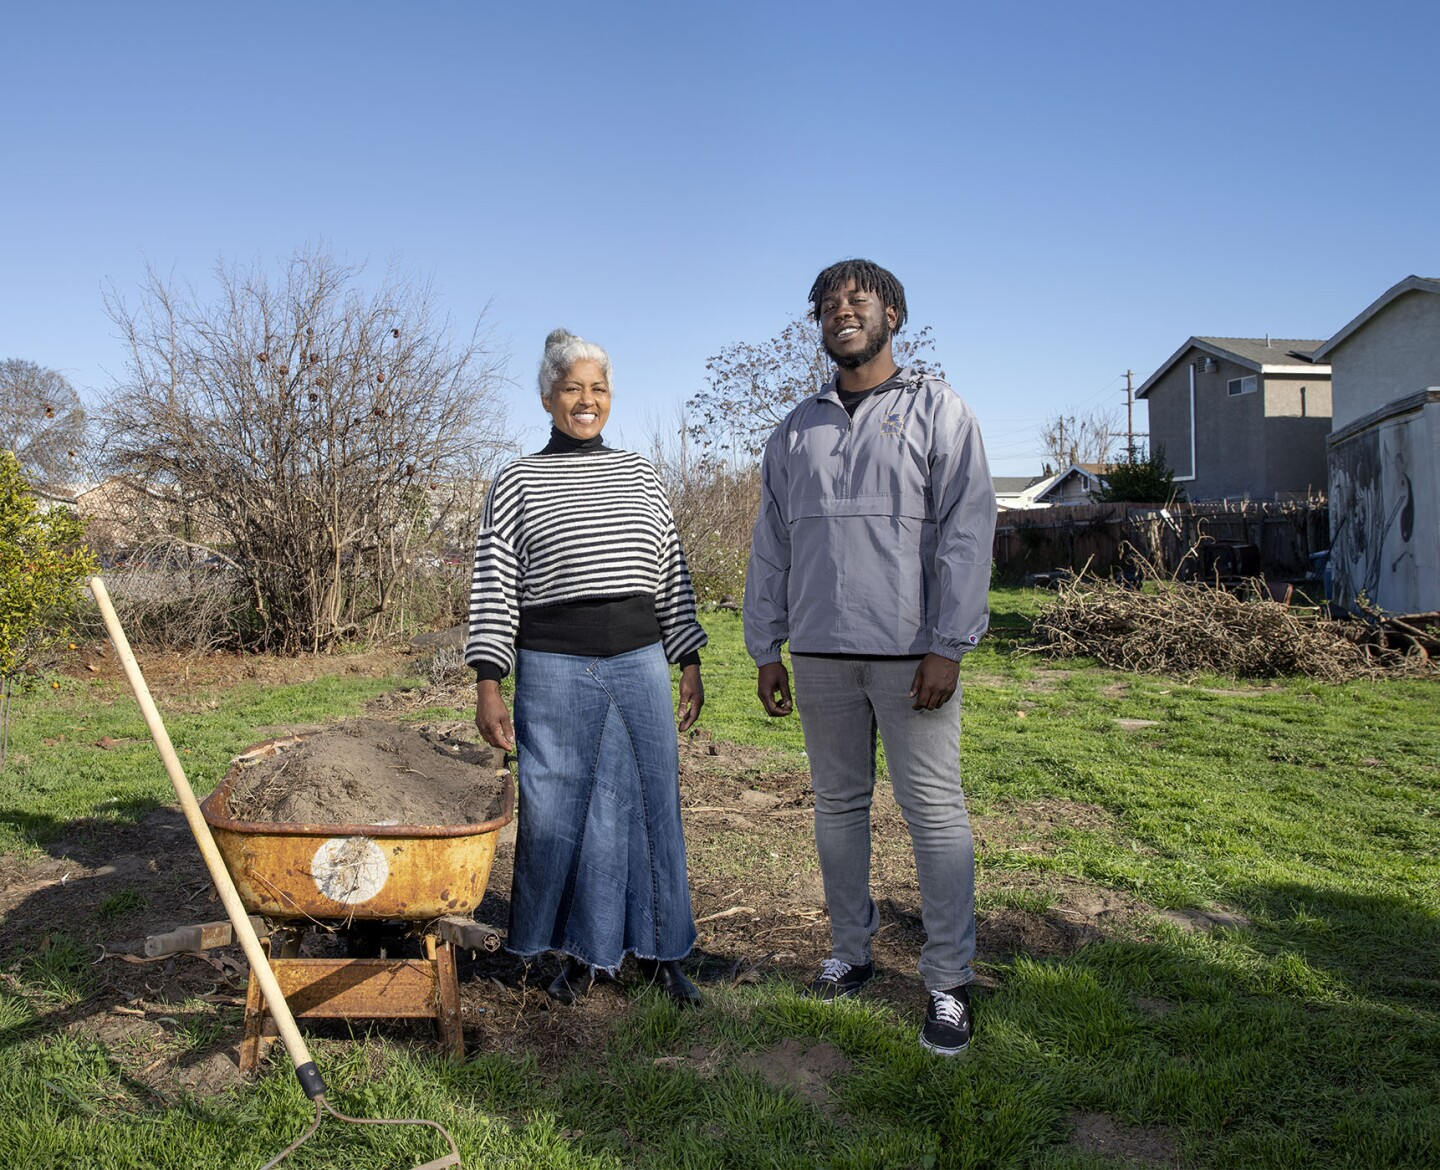 An African American man and women beside a wheelbarrow